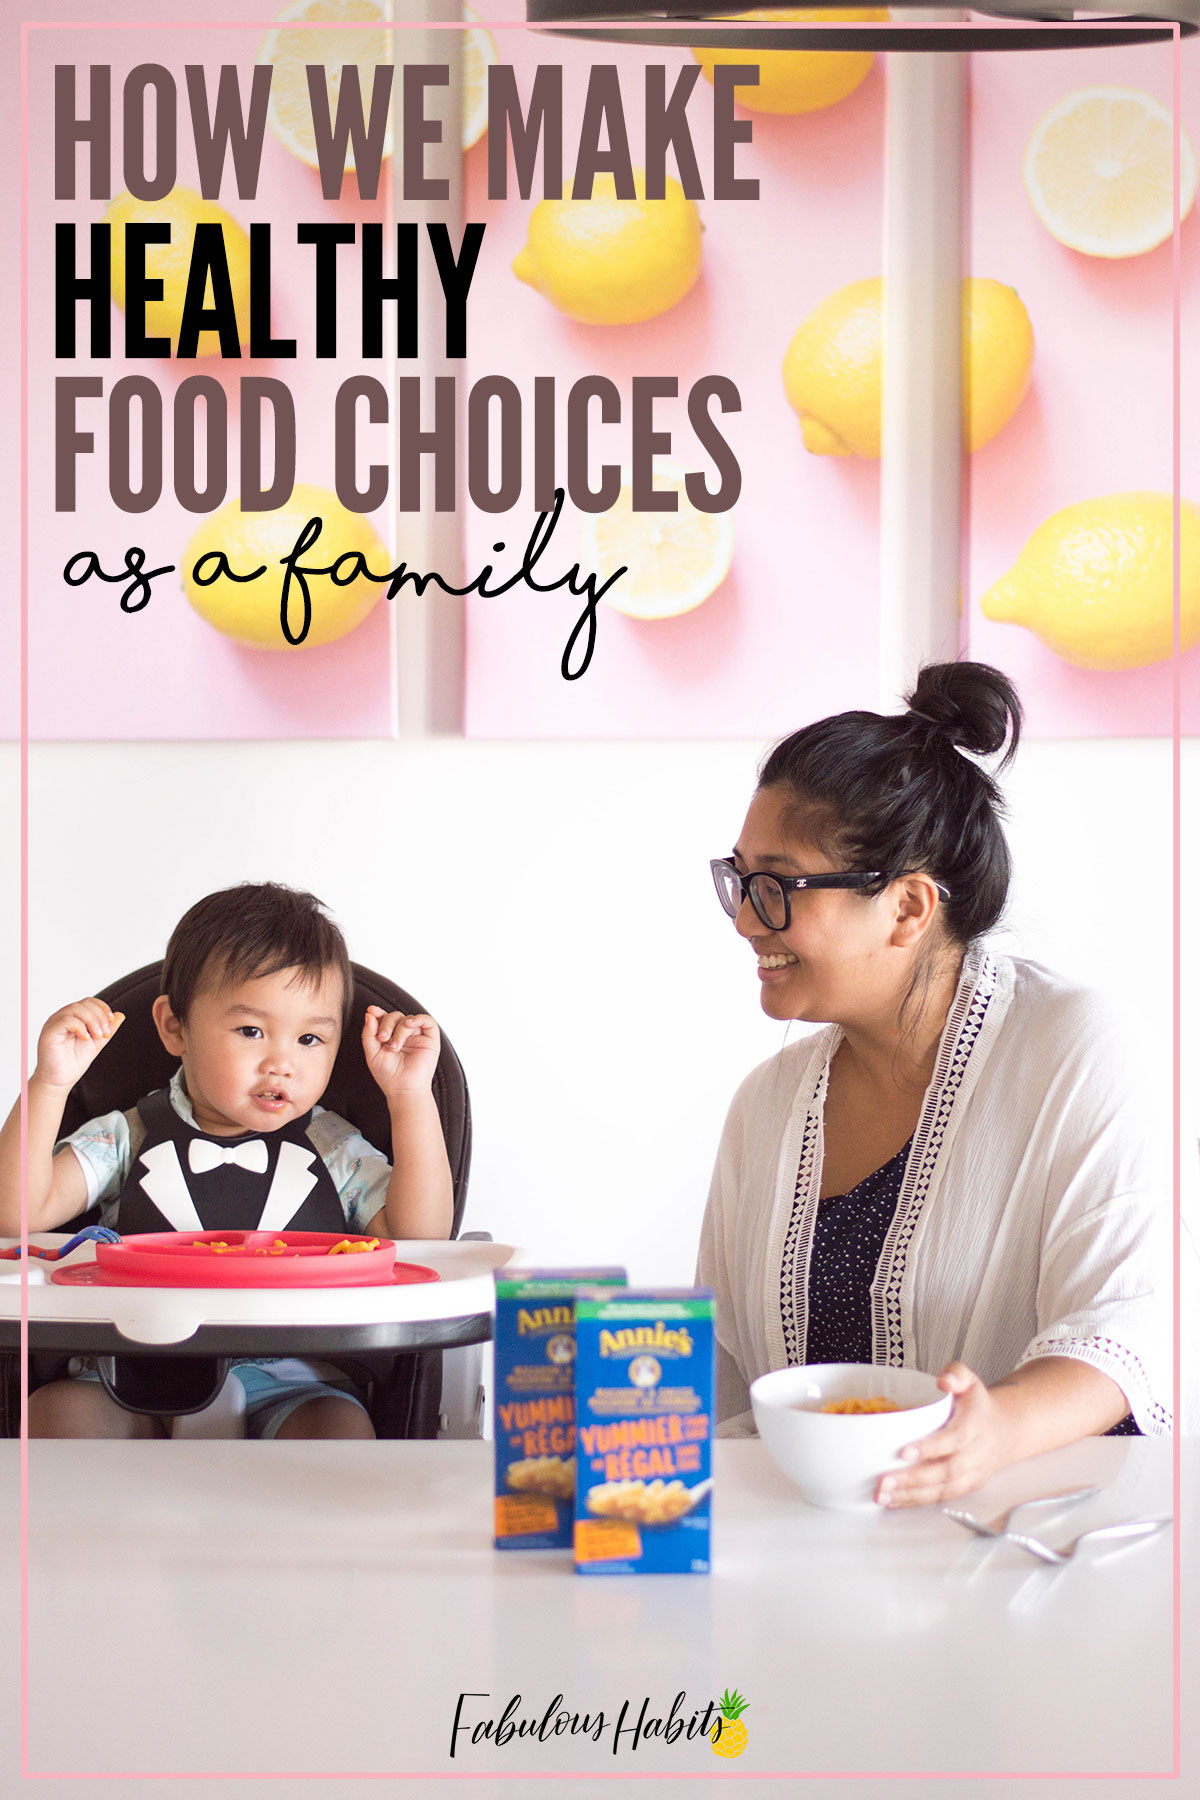 What's your meal planning regimen like? Here's how we make healthy food choices as a family - and it's really just a few, simple steps. Nothing complicated at all! #healthyfoodchoices